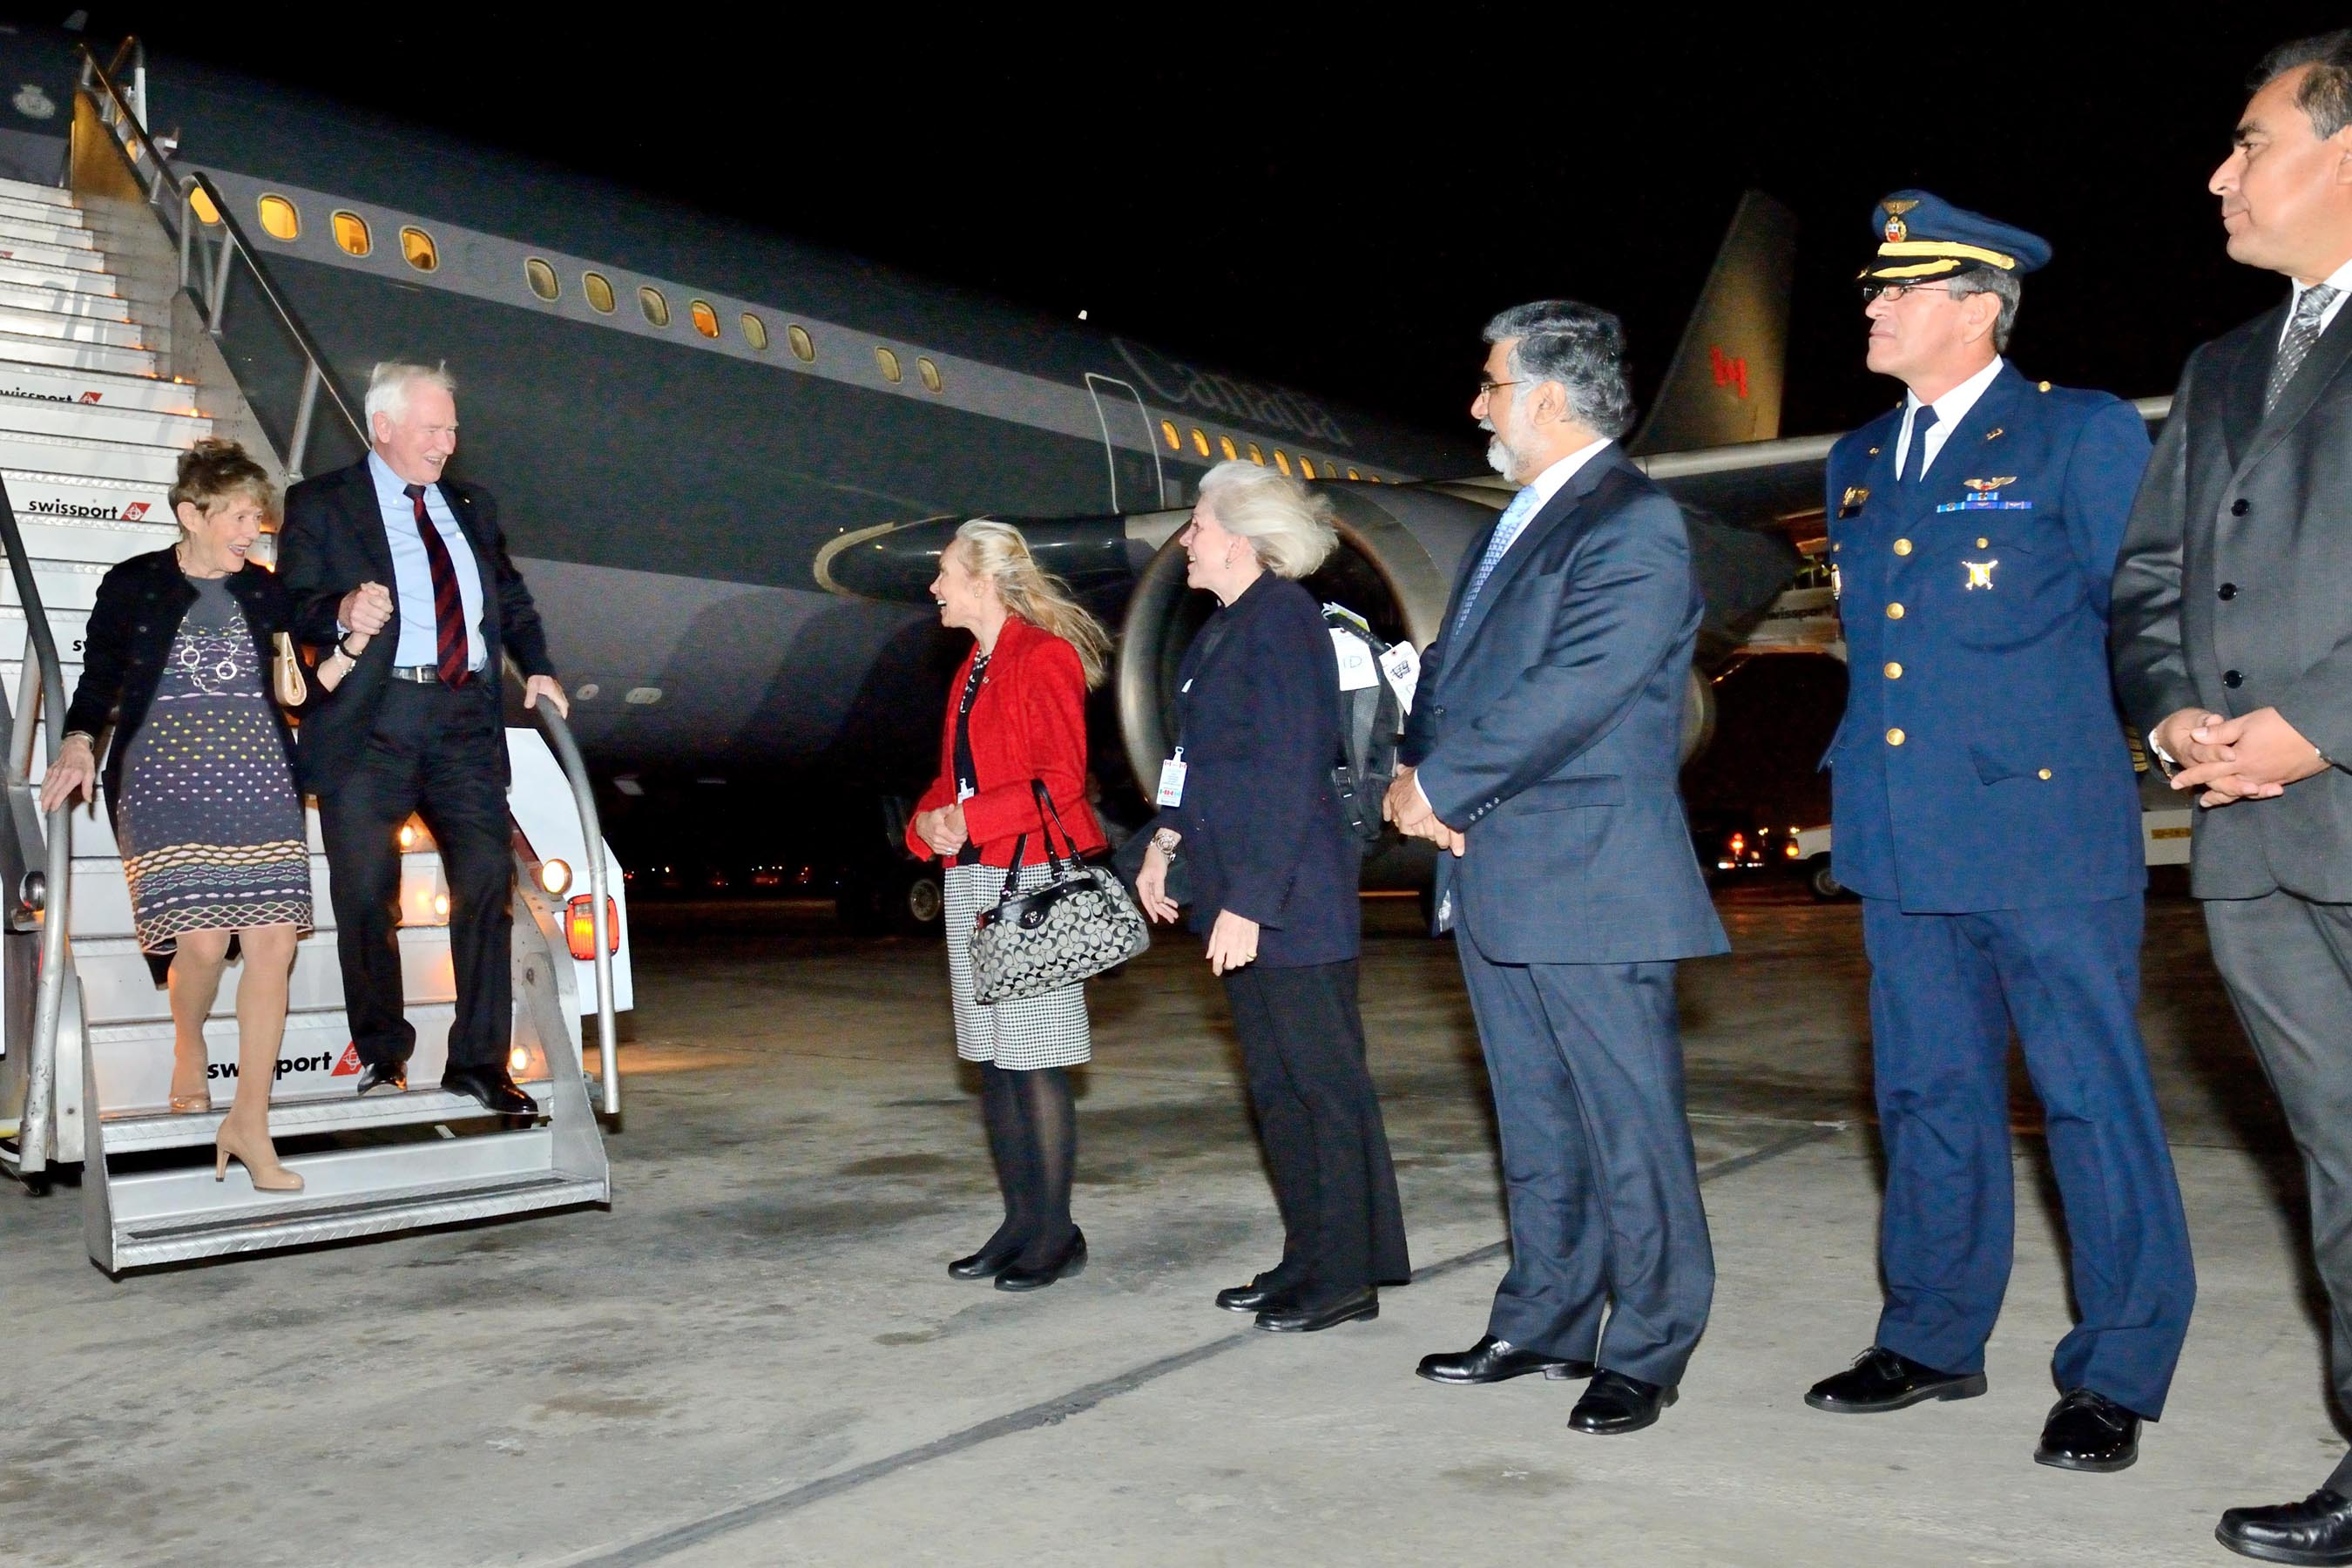 Their Excellencies arrived in Lima, Peru, where they are undertaking an official visit from December 2 to 5.